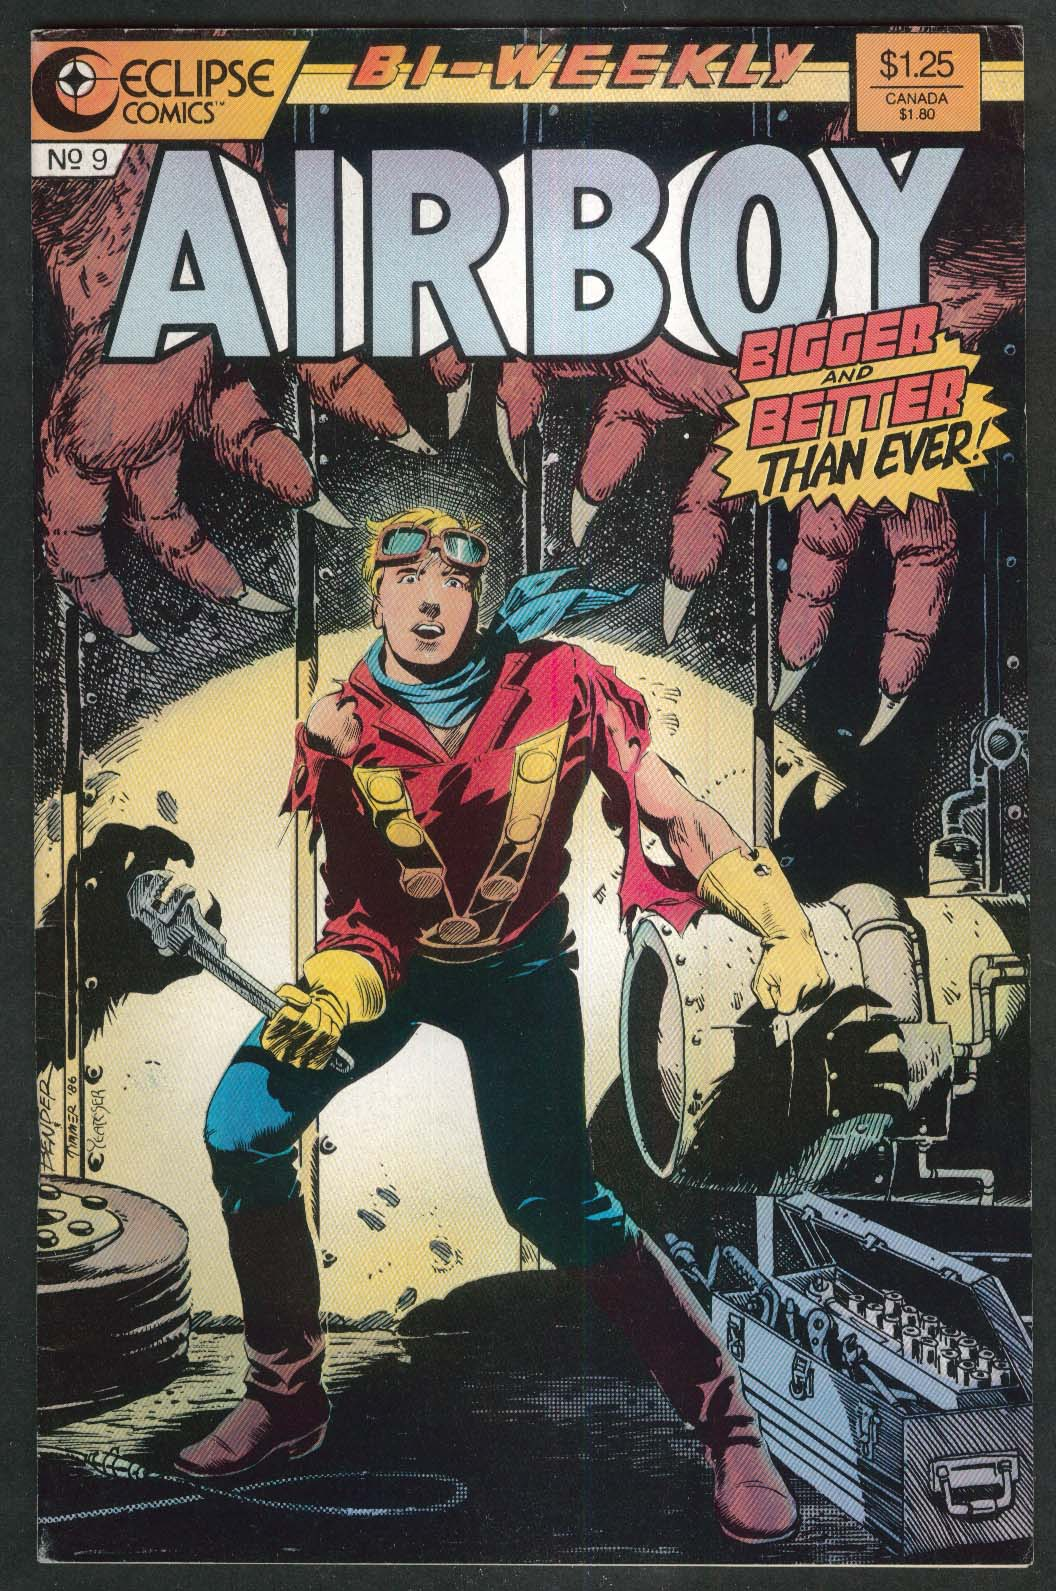 AIRBOY #9 Eclipse comic book 11/4 1986